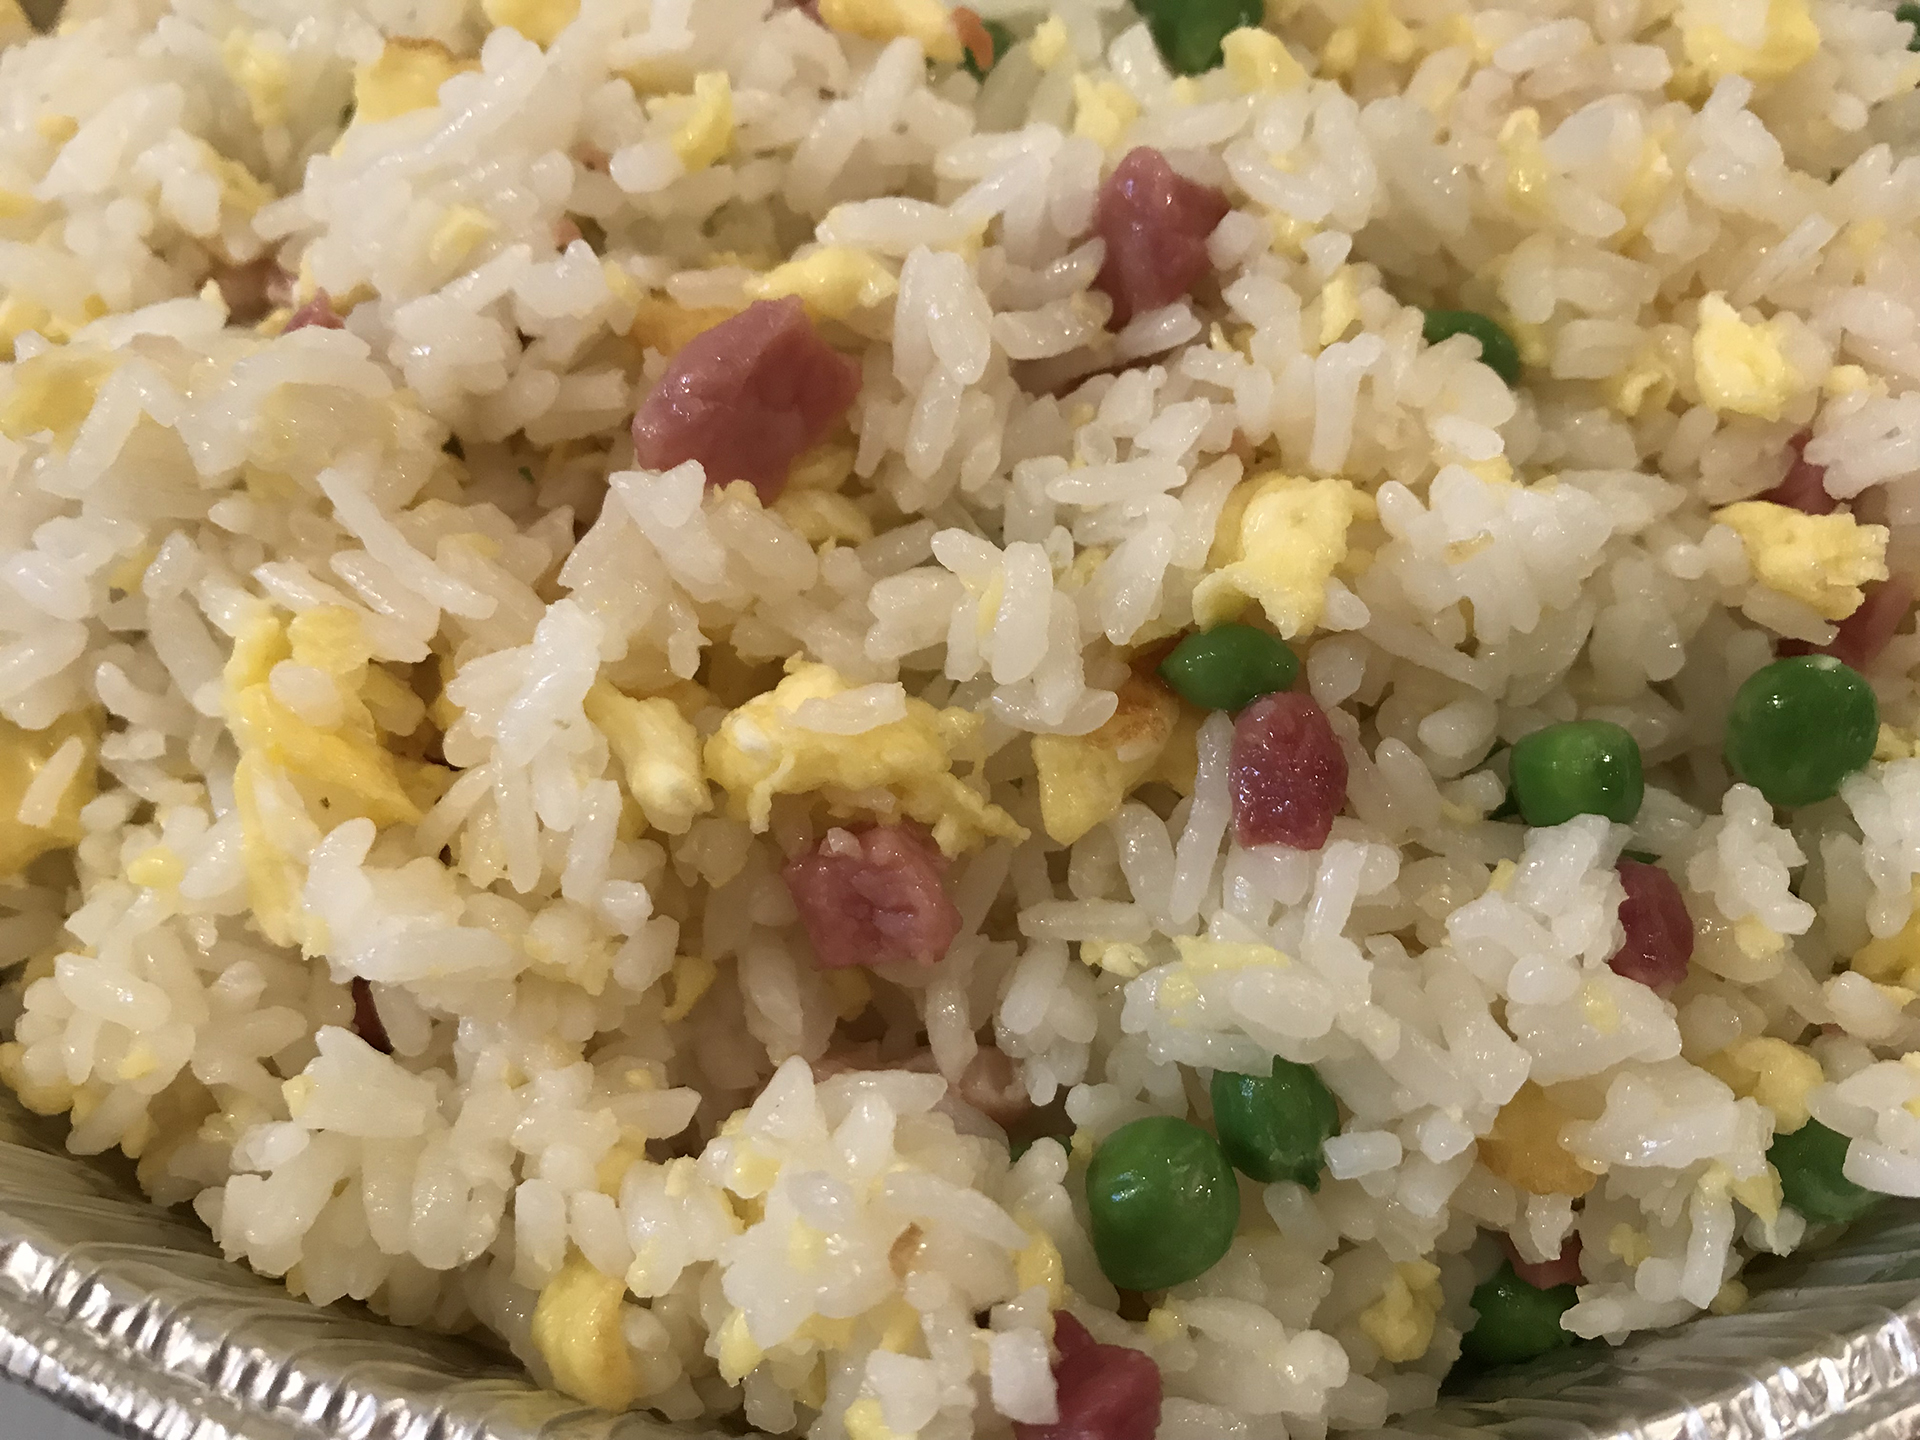 扬州炒饭Egg Fried rice.jpg